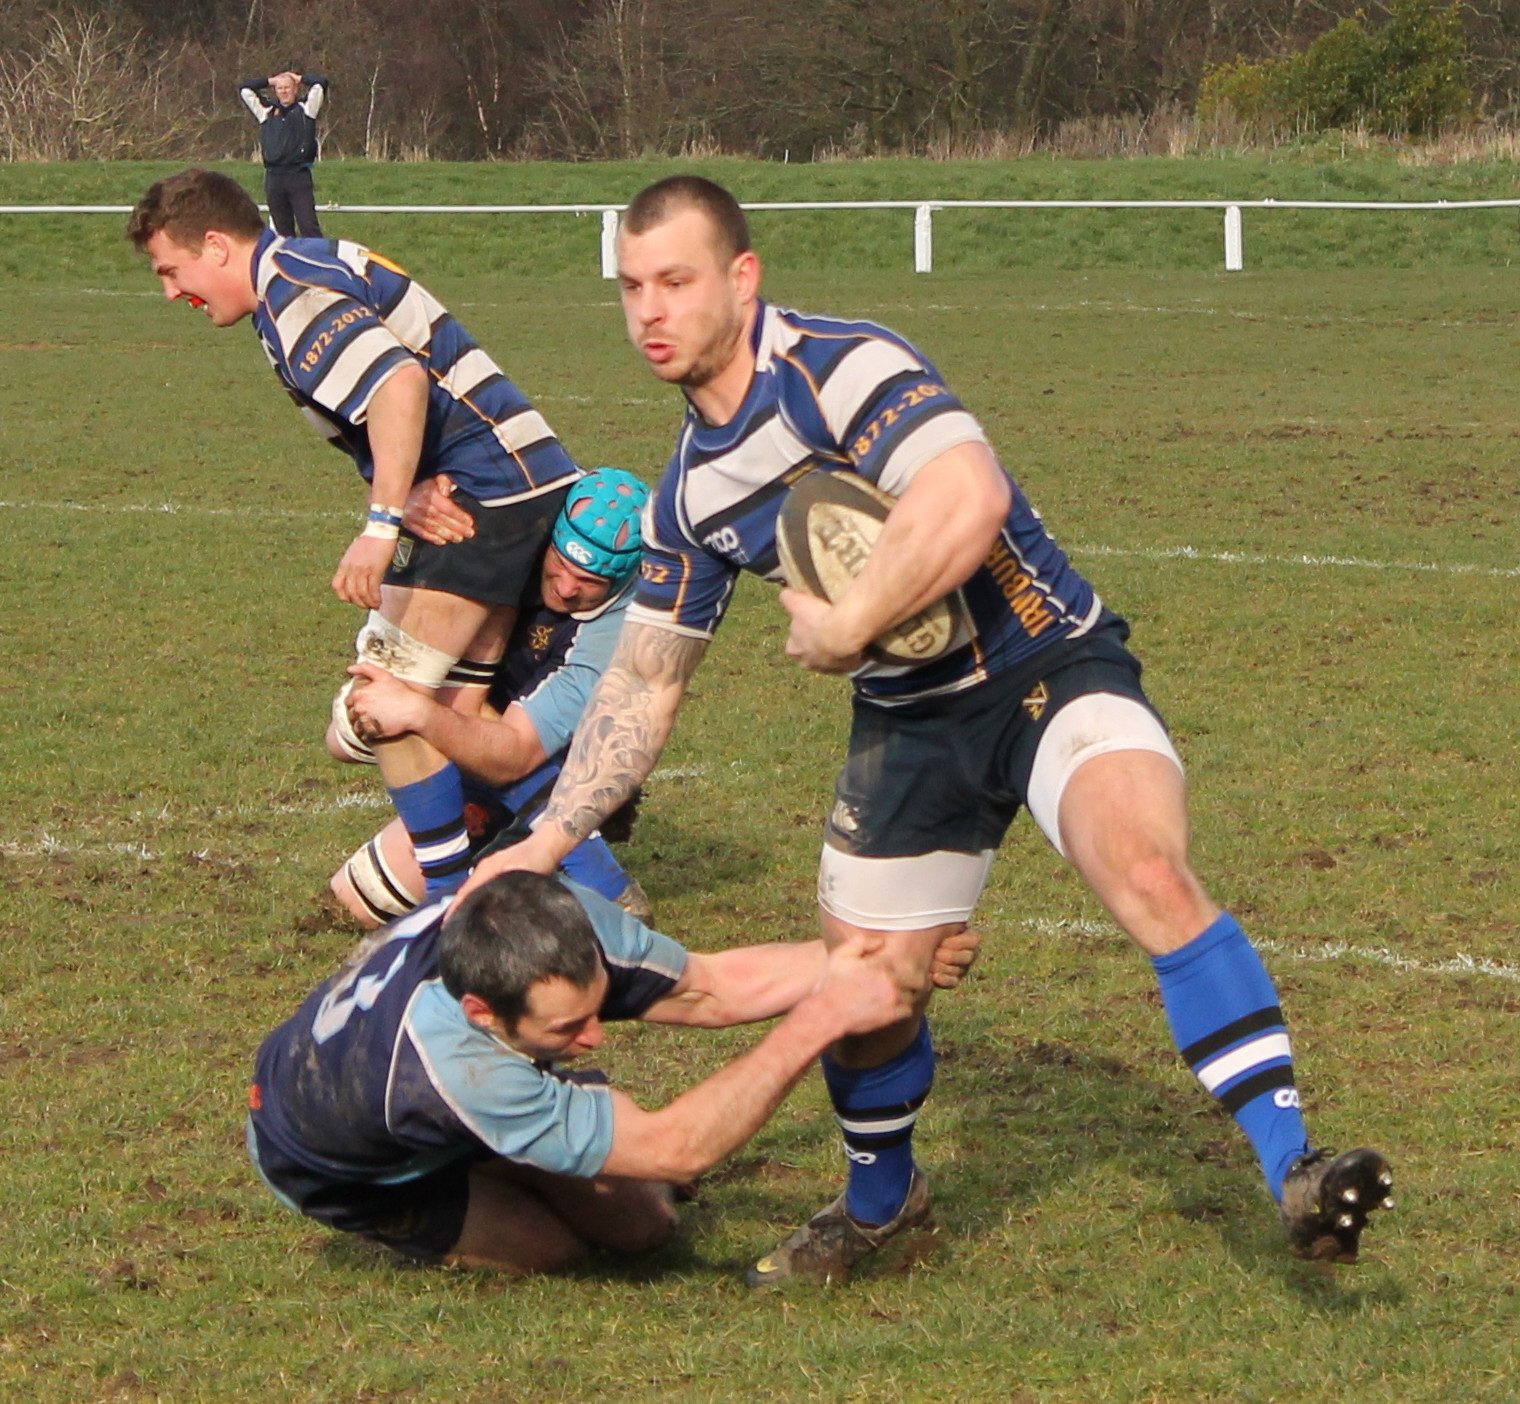 Yarnbury winger Ellis Gomersall is relishing his rugby after a season out